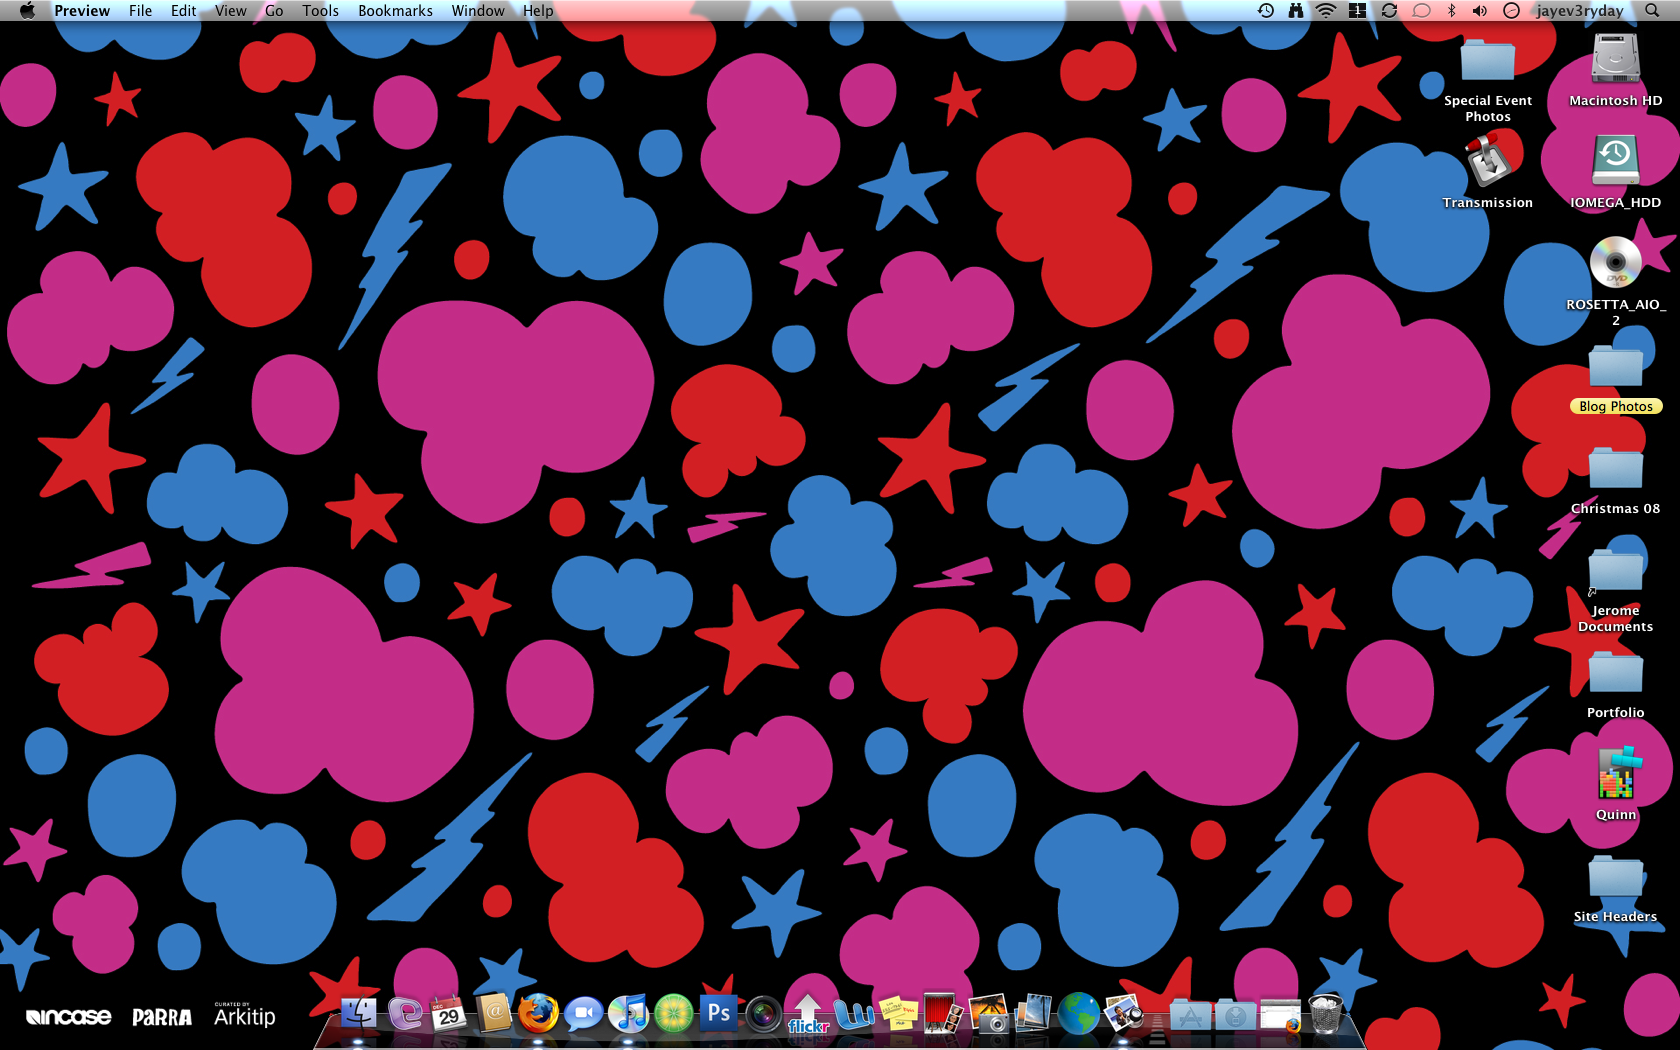 Following the custom Incase design they decided to make this popular design into a wallpaper and also a screensaver.